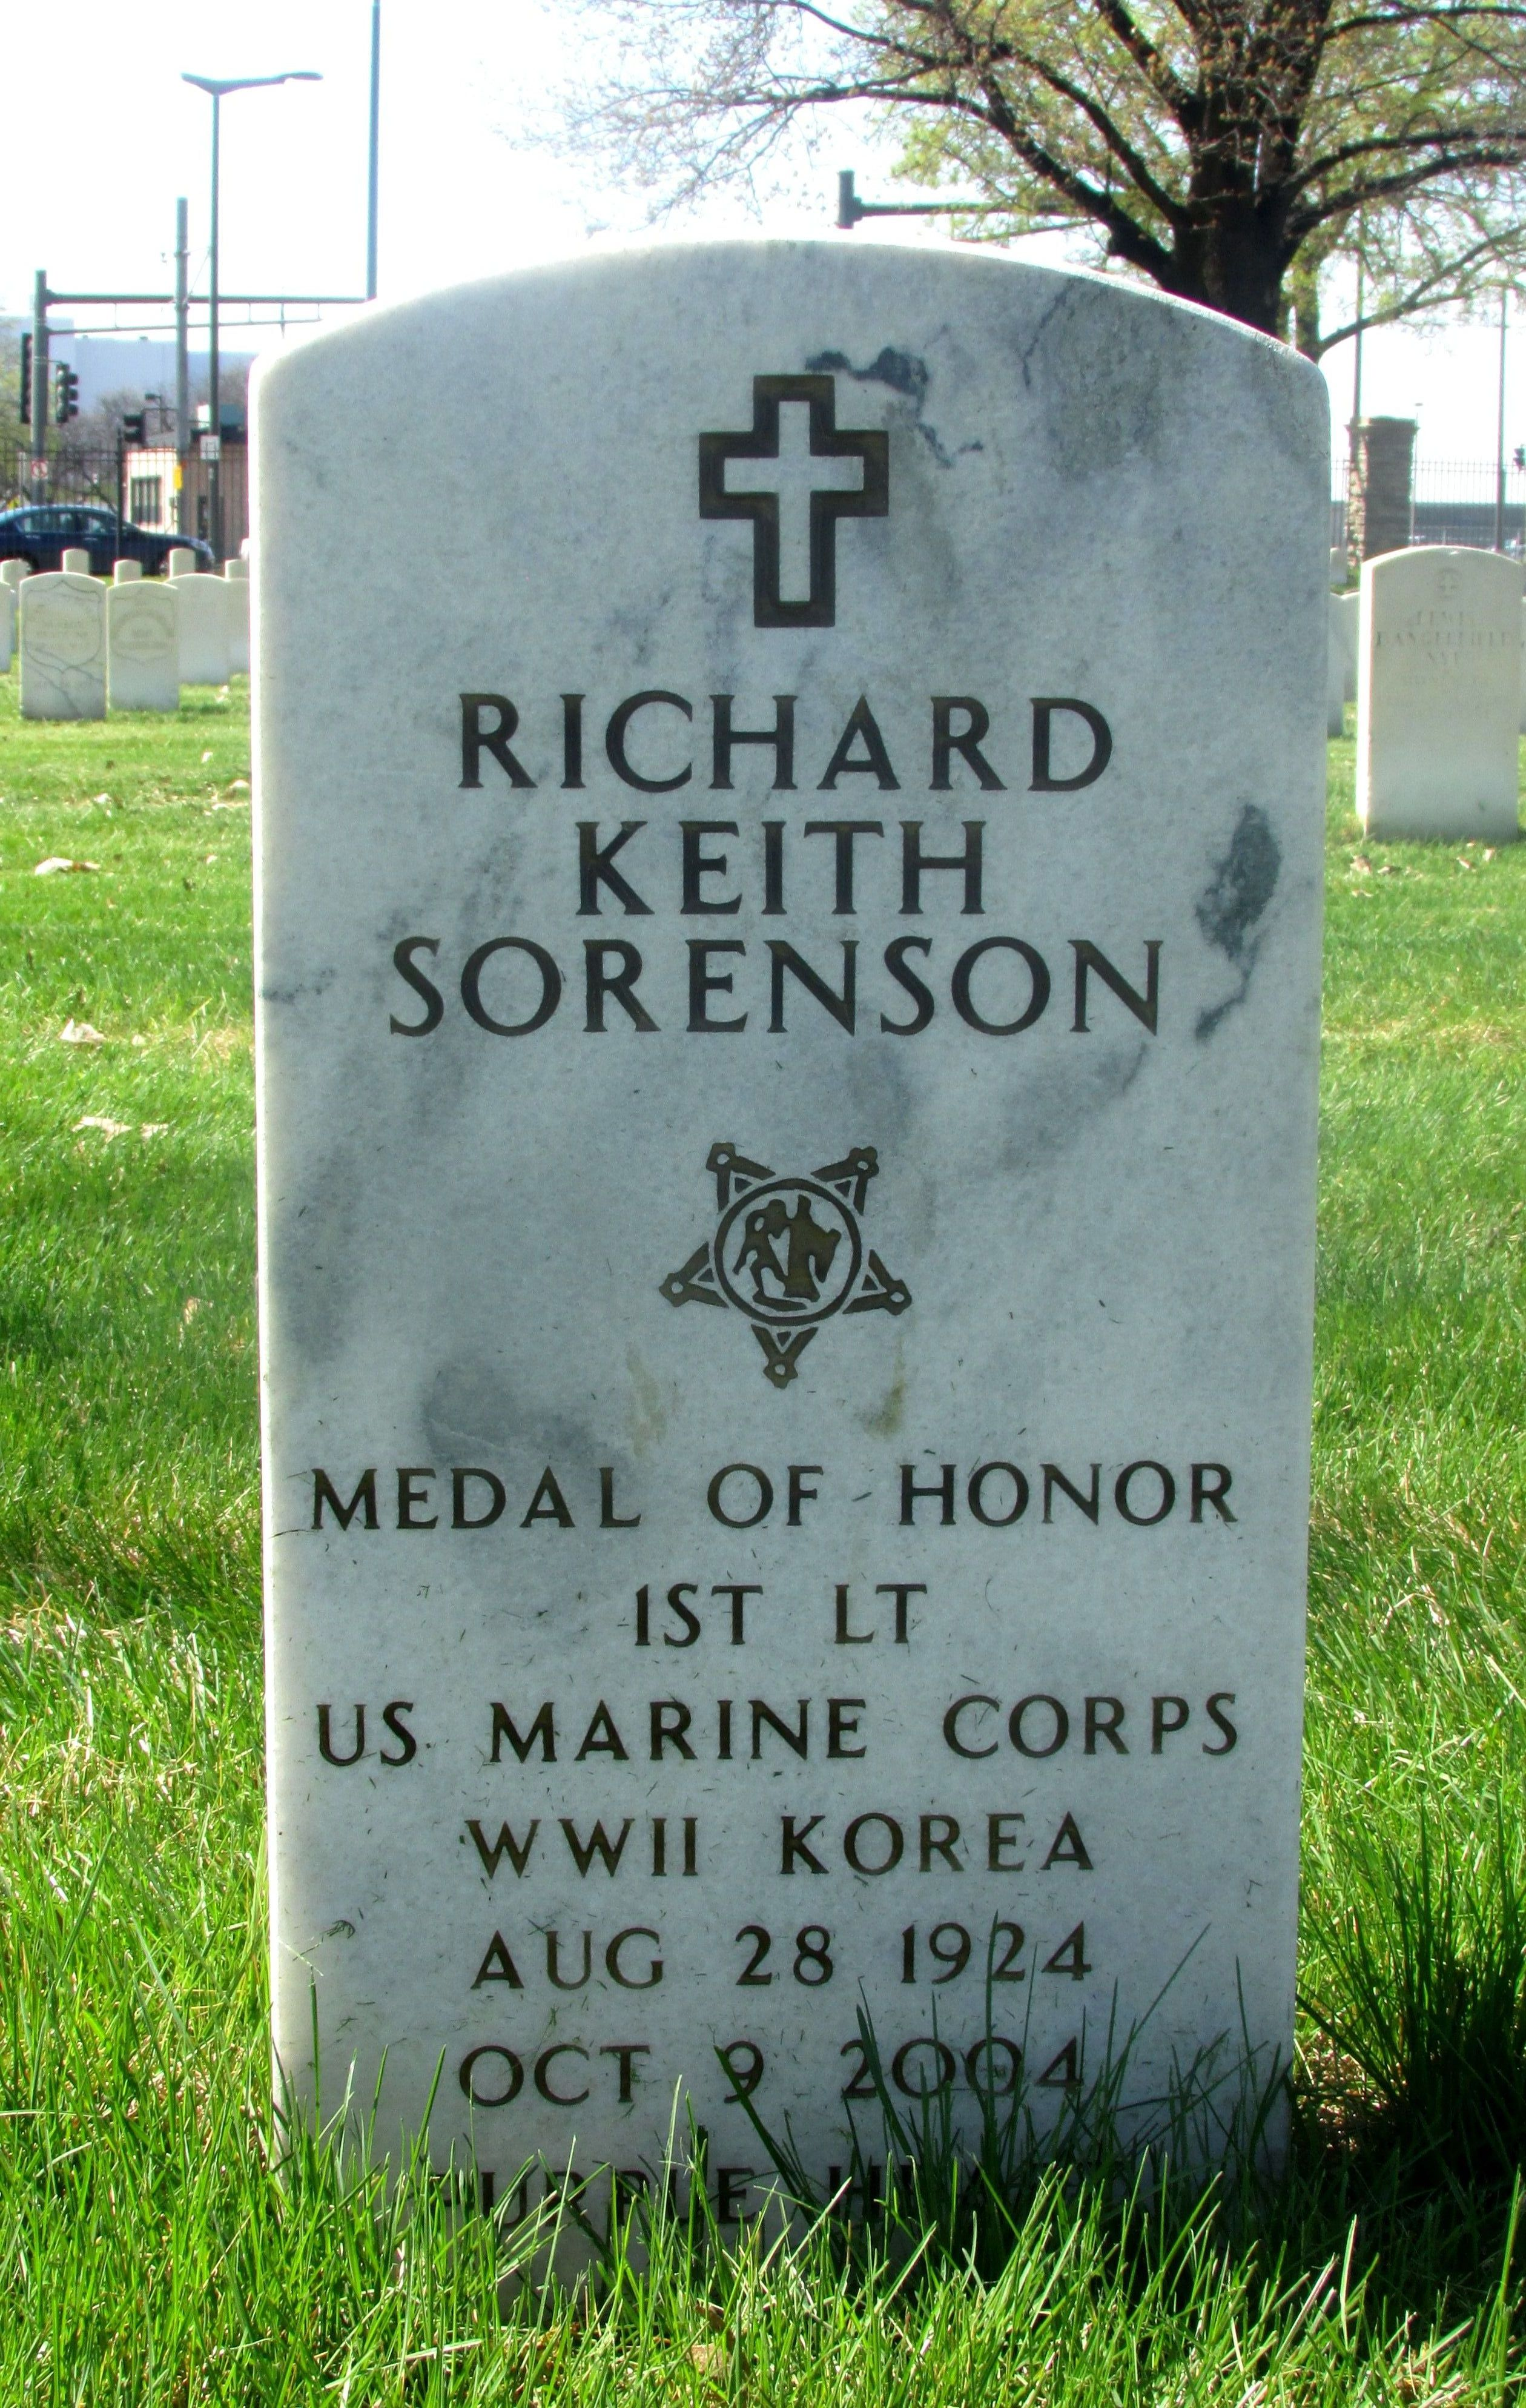 Richard Keith Sorenson